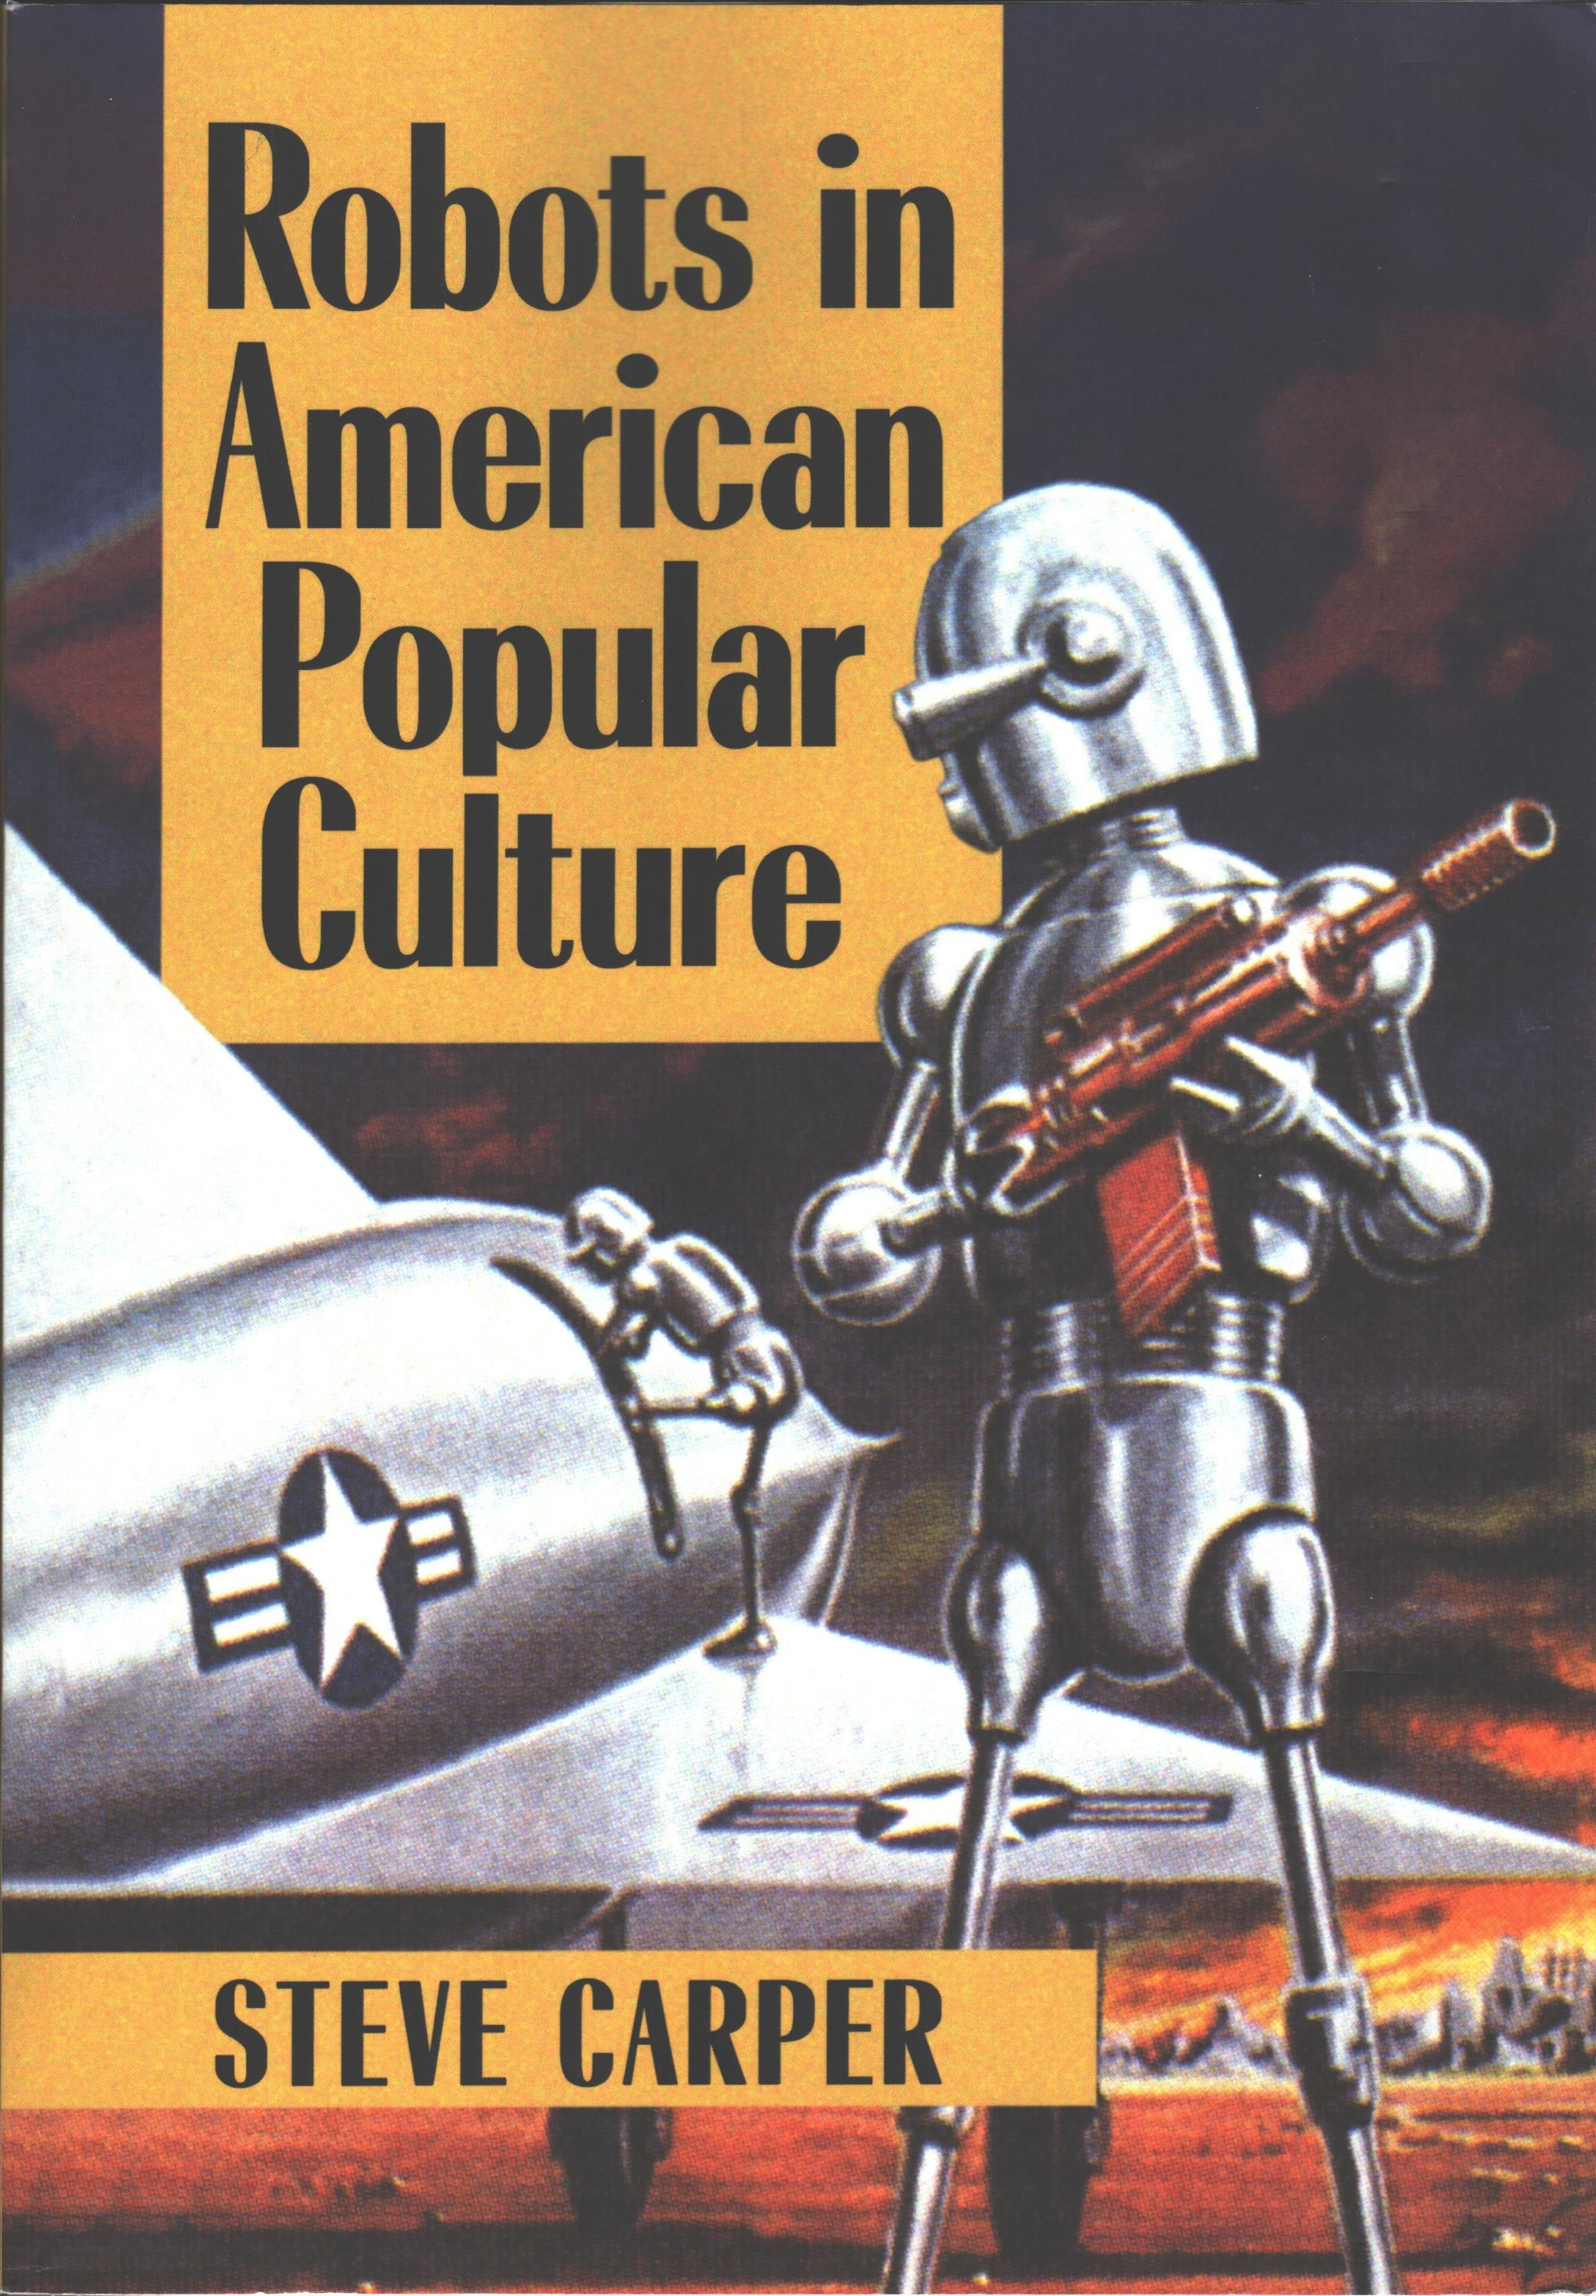 Steve Carper Author Presentation and Book Signing: Robots in American Popular Culture